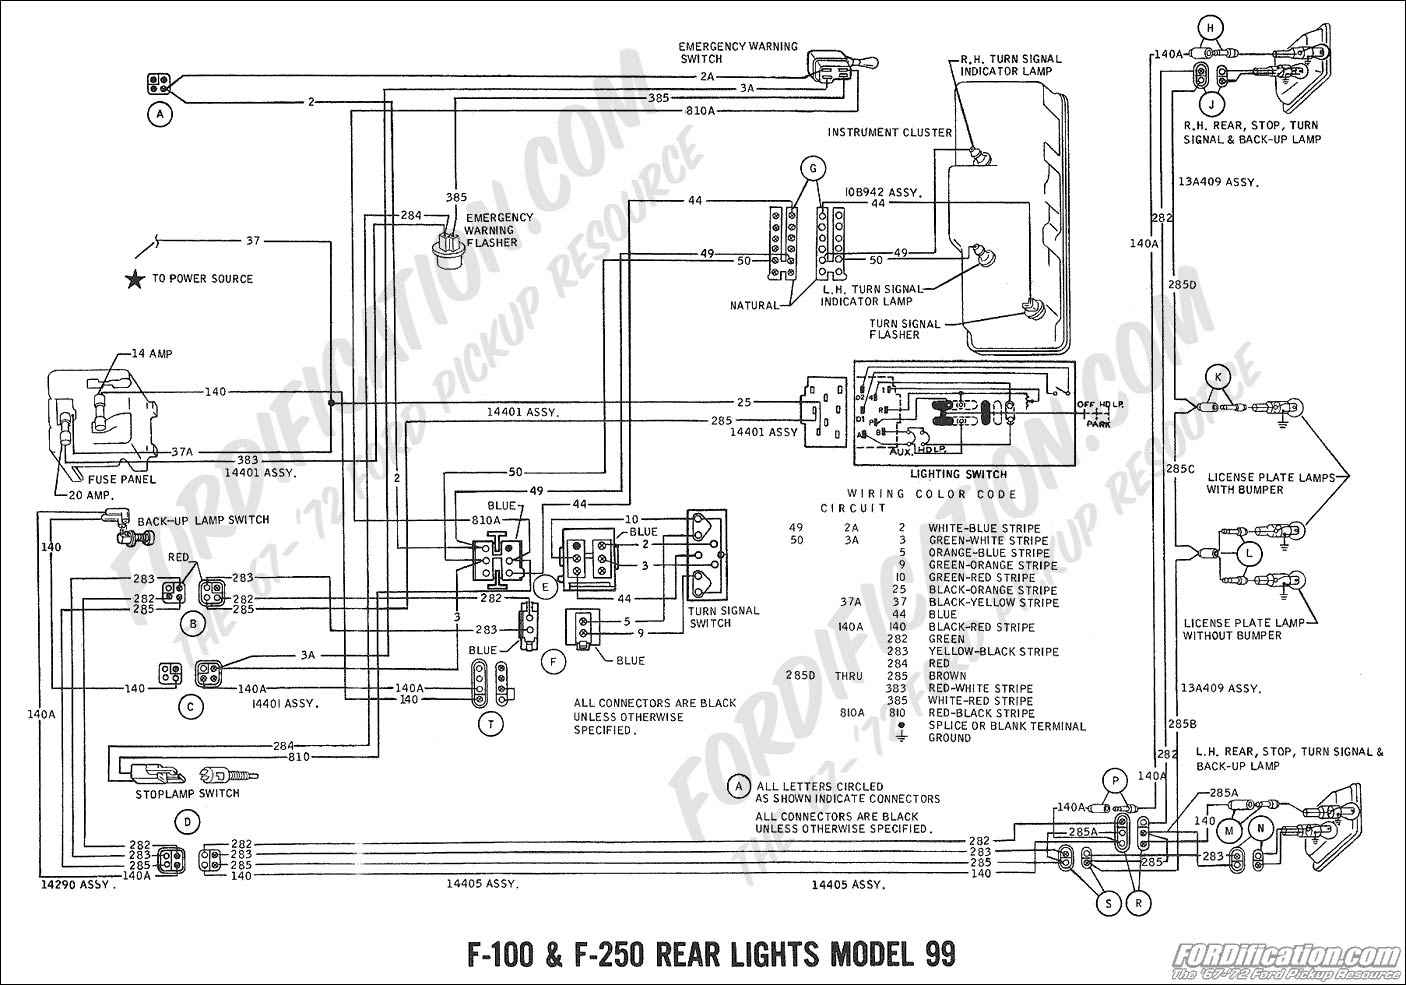 Fuse Box Diagram For 1990 Acura Integra. Acura. Auto Fuse